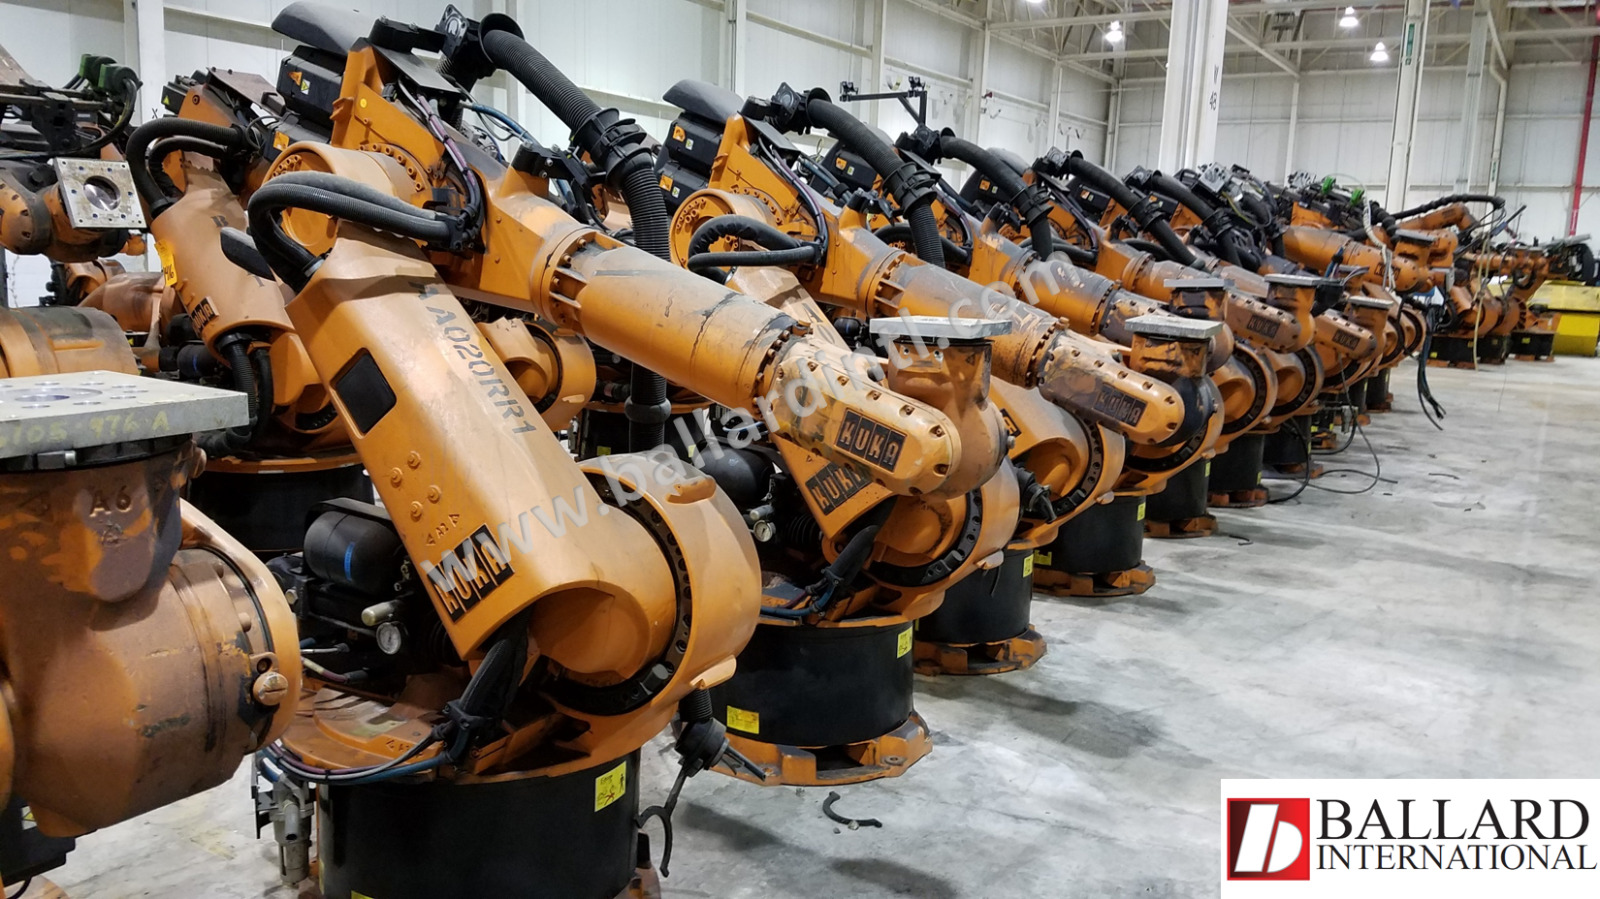 50 Complete Kuka KR150 200 Robot 56 [ irc5 m2004 manual ] abb robot abb 3hac 2385 1 3hac 4791 1 abb irc5 m2004 wiring diagram at bayanpartner.co